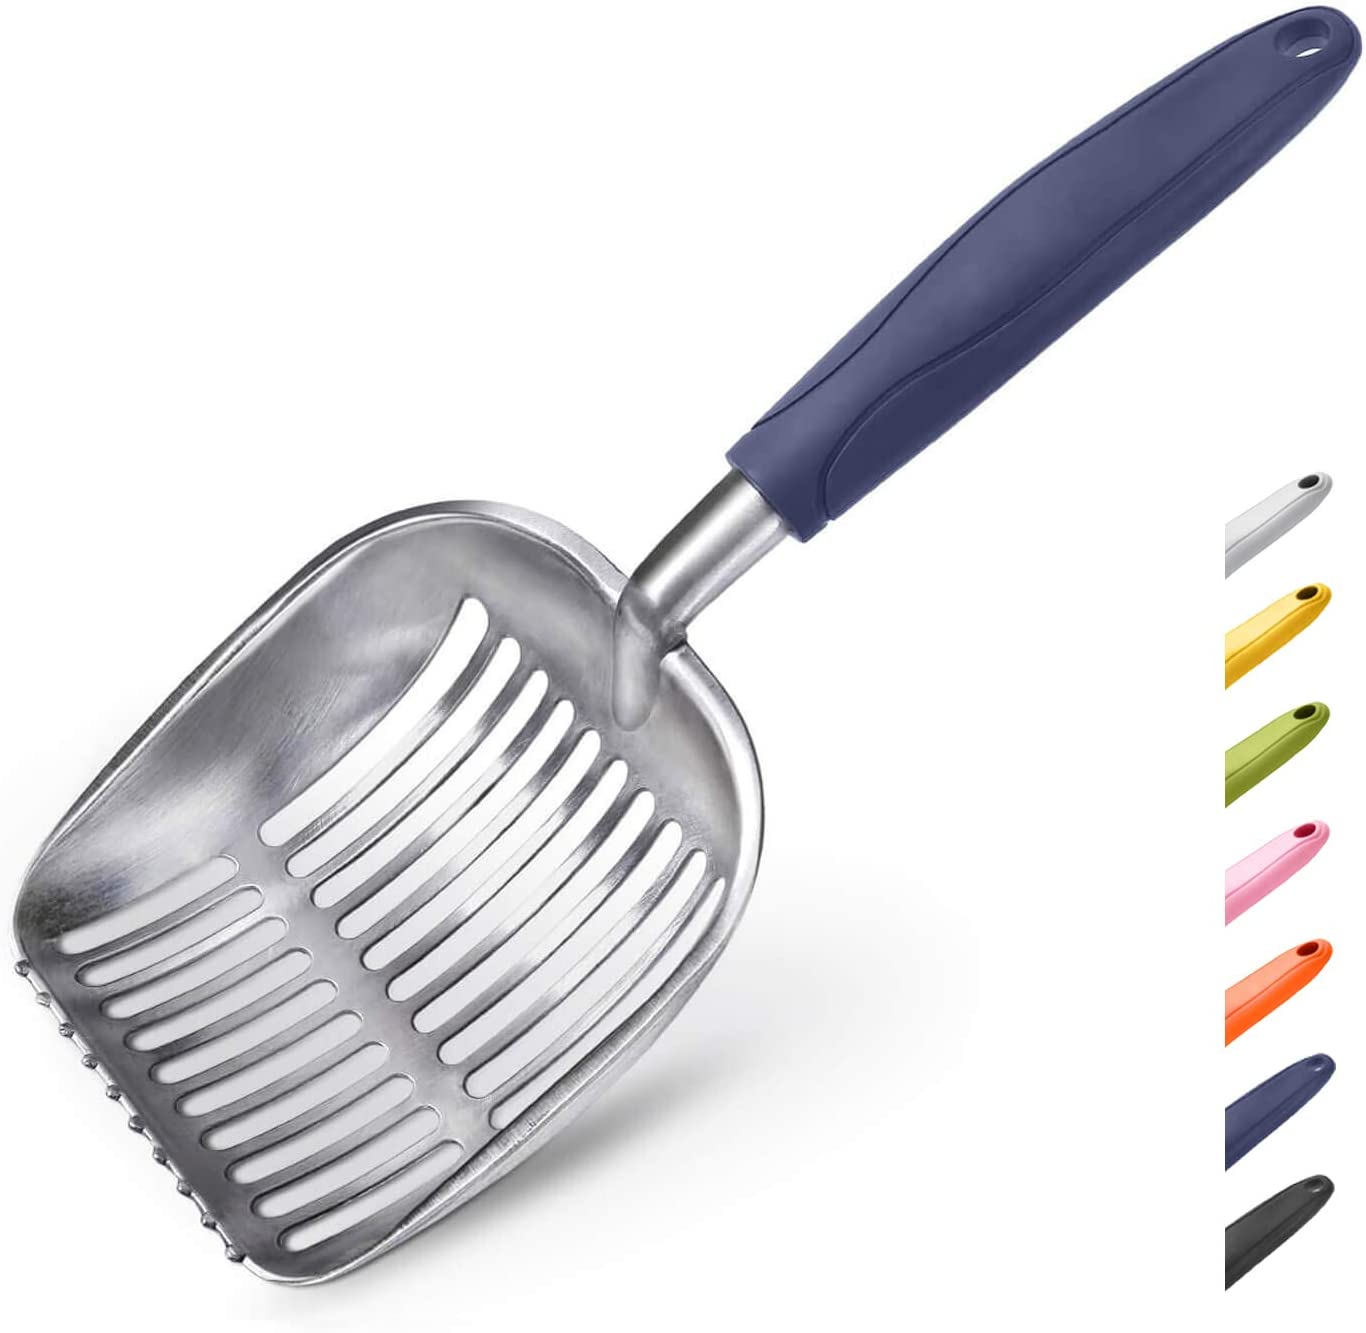 WePet Cat Litter Scoop Solid Aluminum Alloy Sifter Deep Shovel, Long Handle Cat Metal Scooper, Poop Sifting, Pooper Lifter, Kitty Pet Sifter Durable, Heavy Duty Neater Scoops for Litterbox